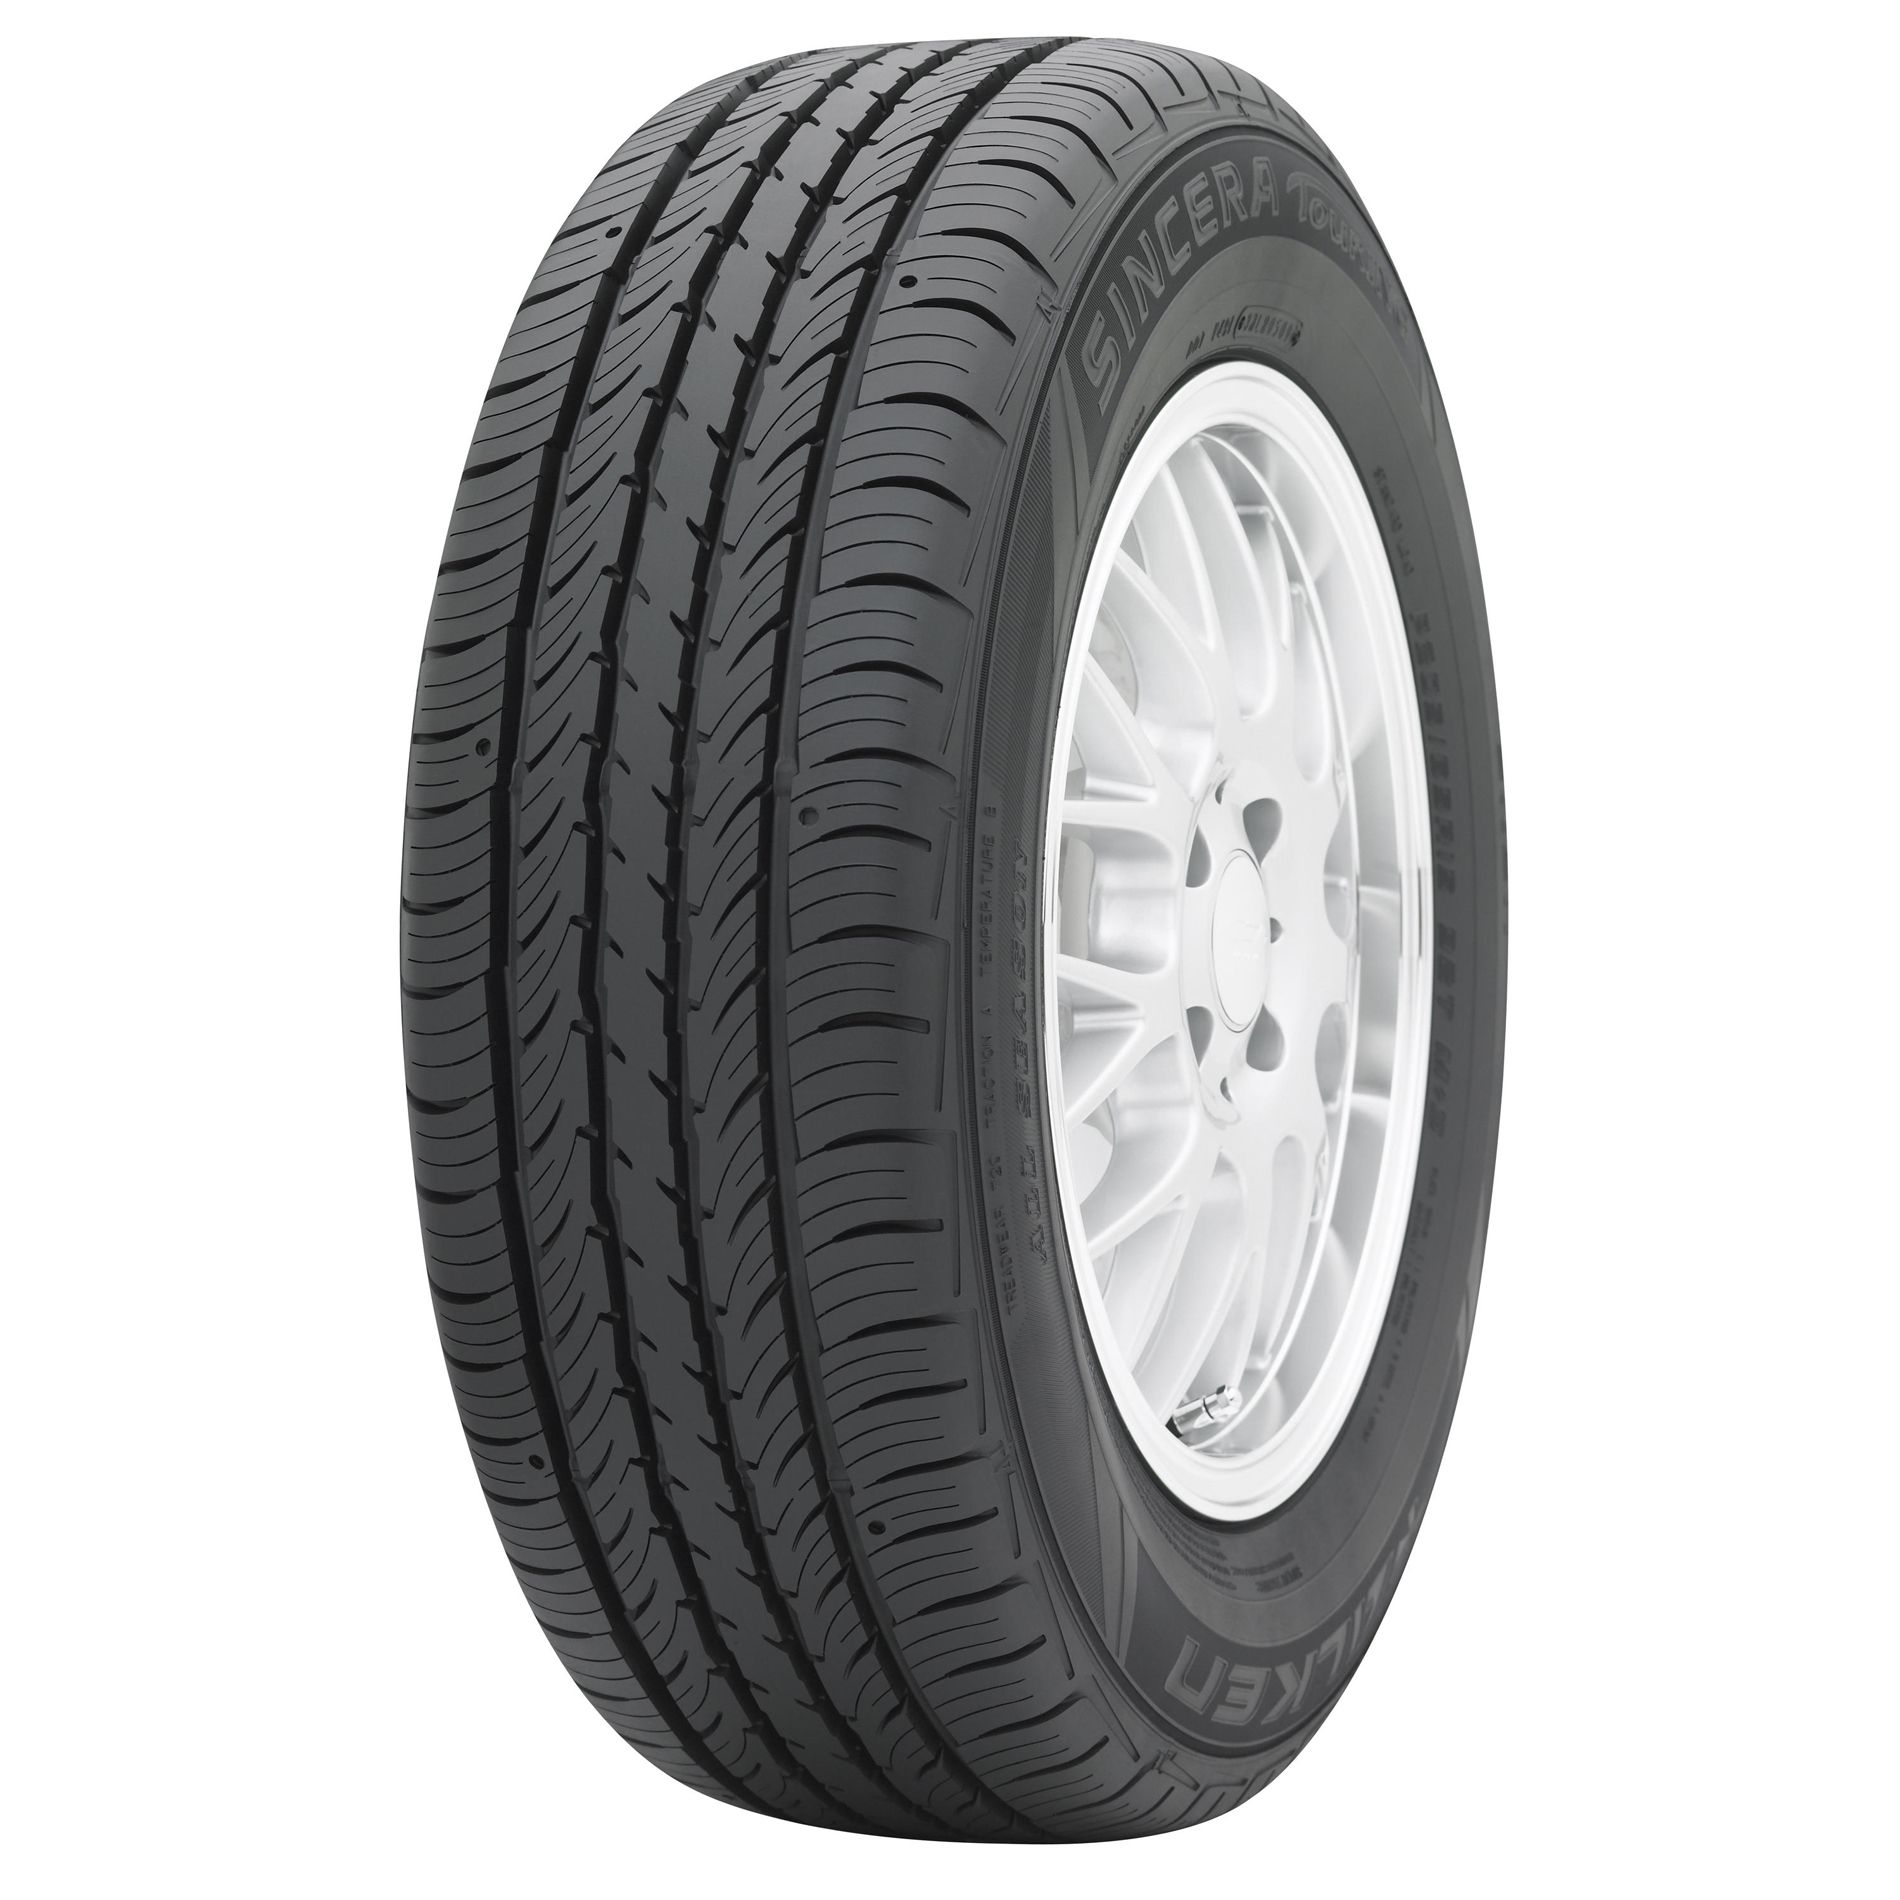 Sincera Touring SN211 - P215/65R15 95T BW - All Season Tire